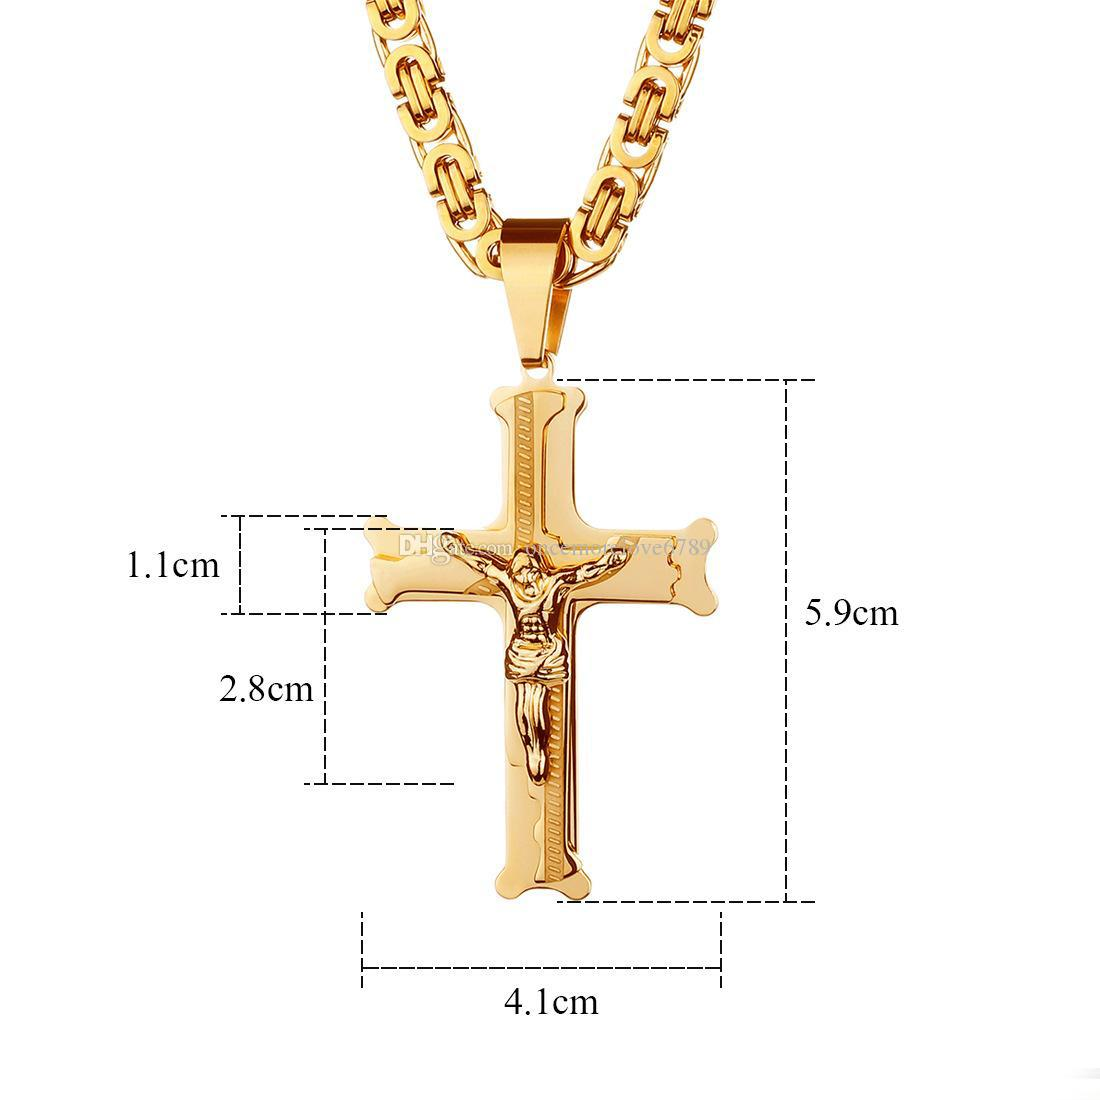 Hip Hop jewelry Men's Cross necklaces Titanium steel Christian Jesus Crosses pendant Gold Filled Chains For women s Fashion Jewelry Gift